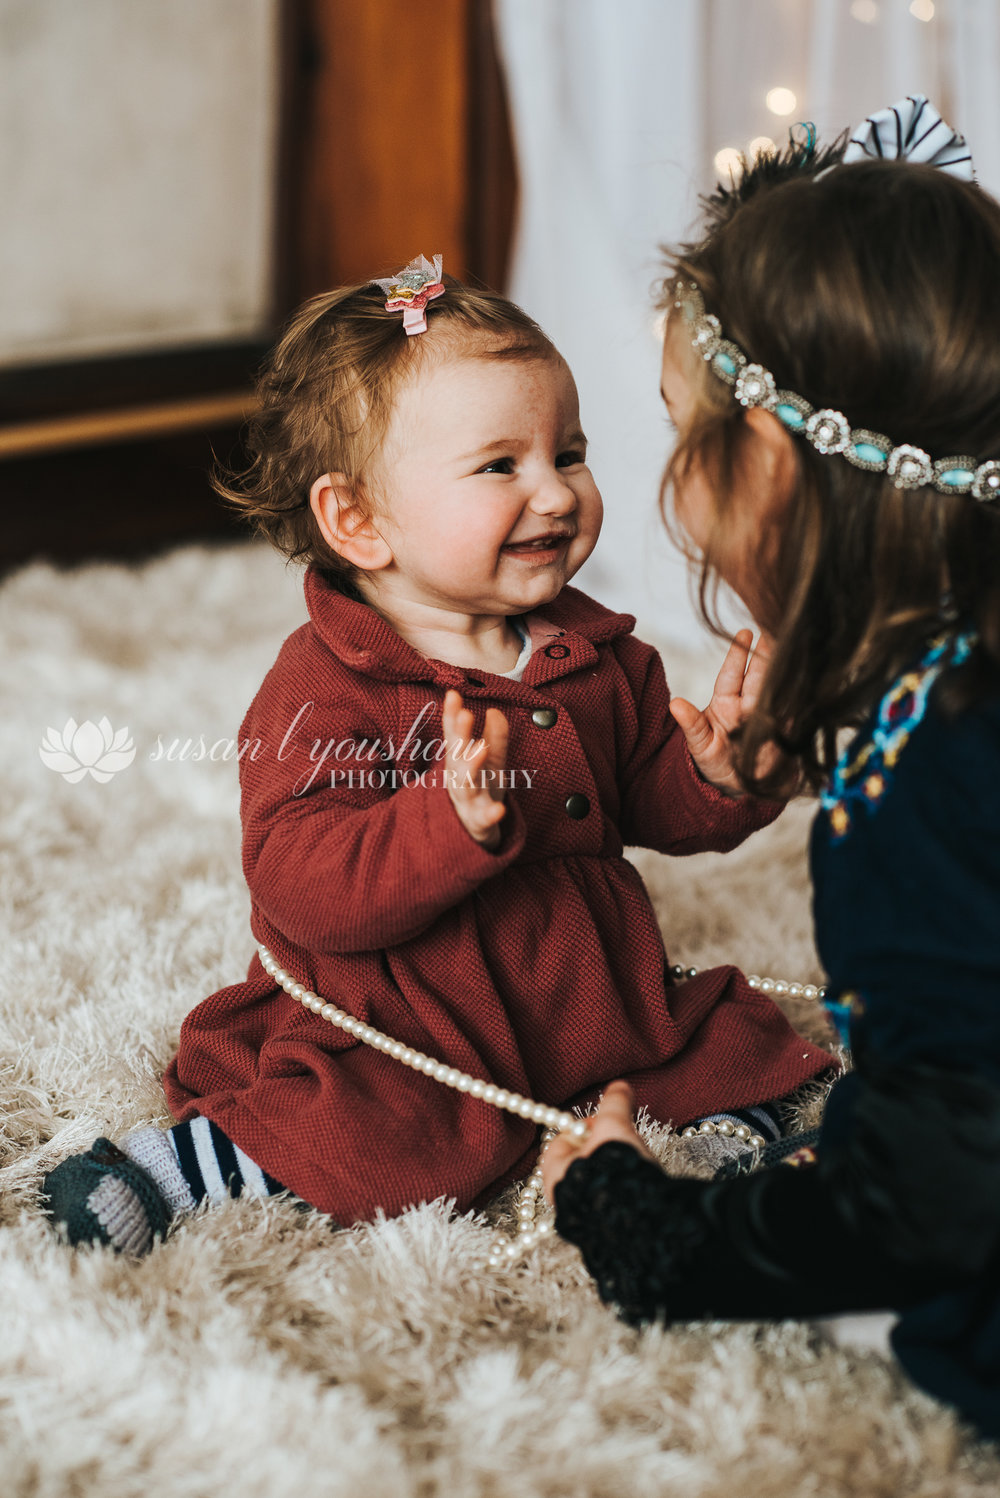 Children portraits lucia and gulia 01-06-2019 slyp photography llc-7.jpg